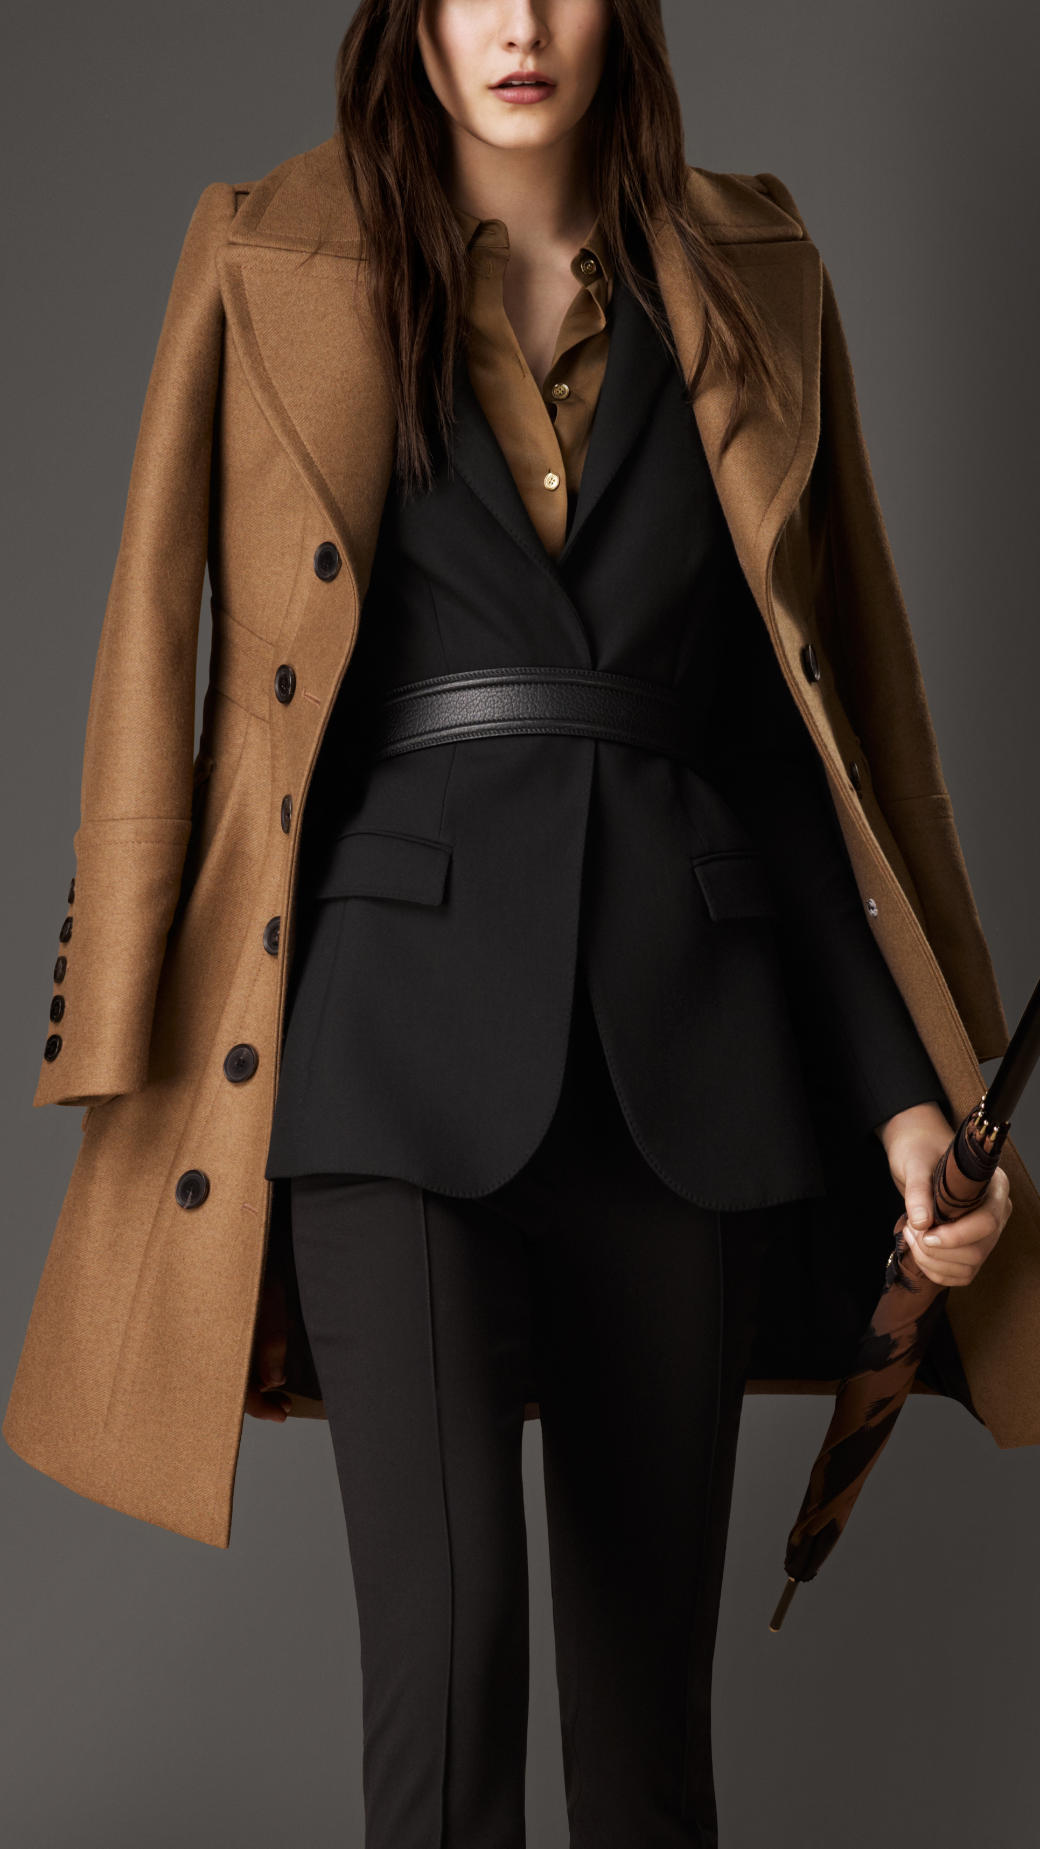 Lyst - Burberry Bonded Wool Cashmere Military Coat in Brown cfd2f0a93